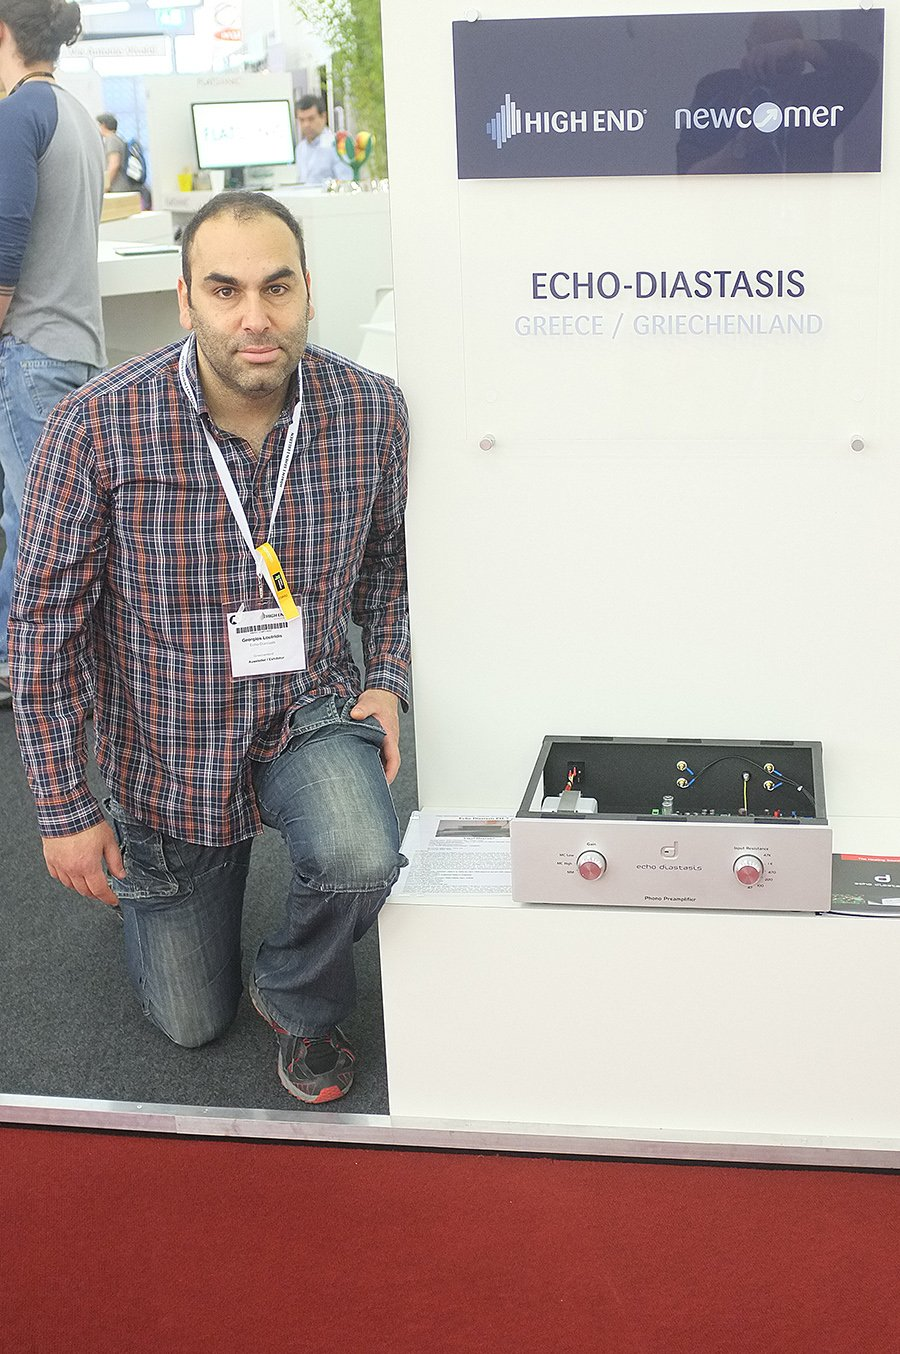 Echodiastasis_High_end_munich_2016_2S